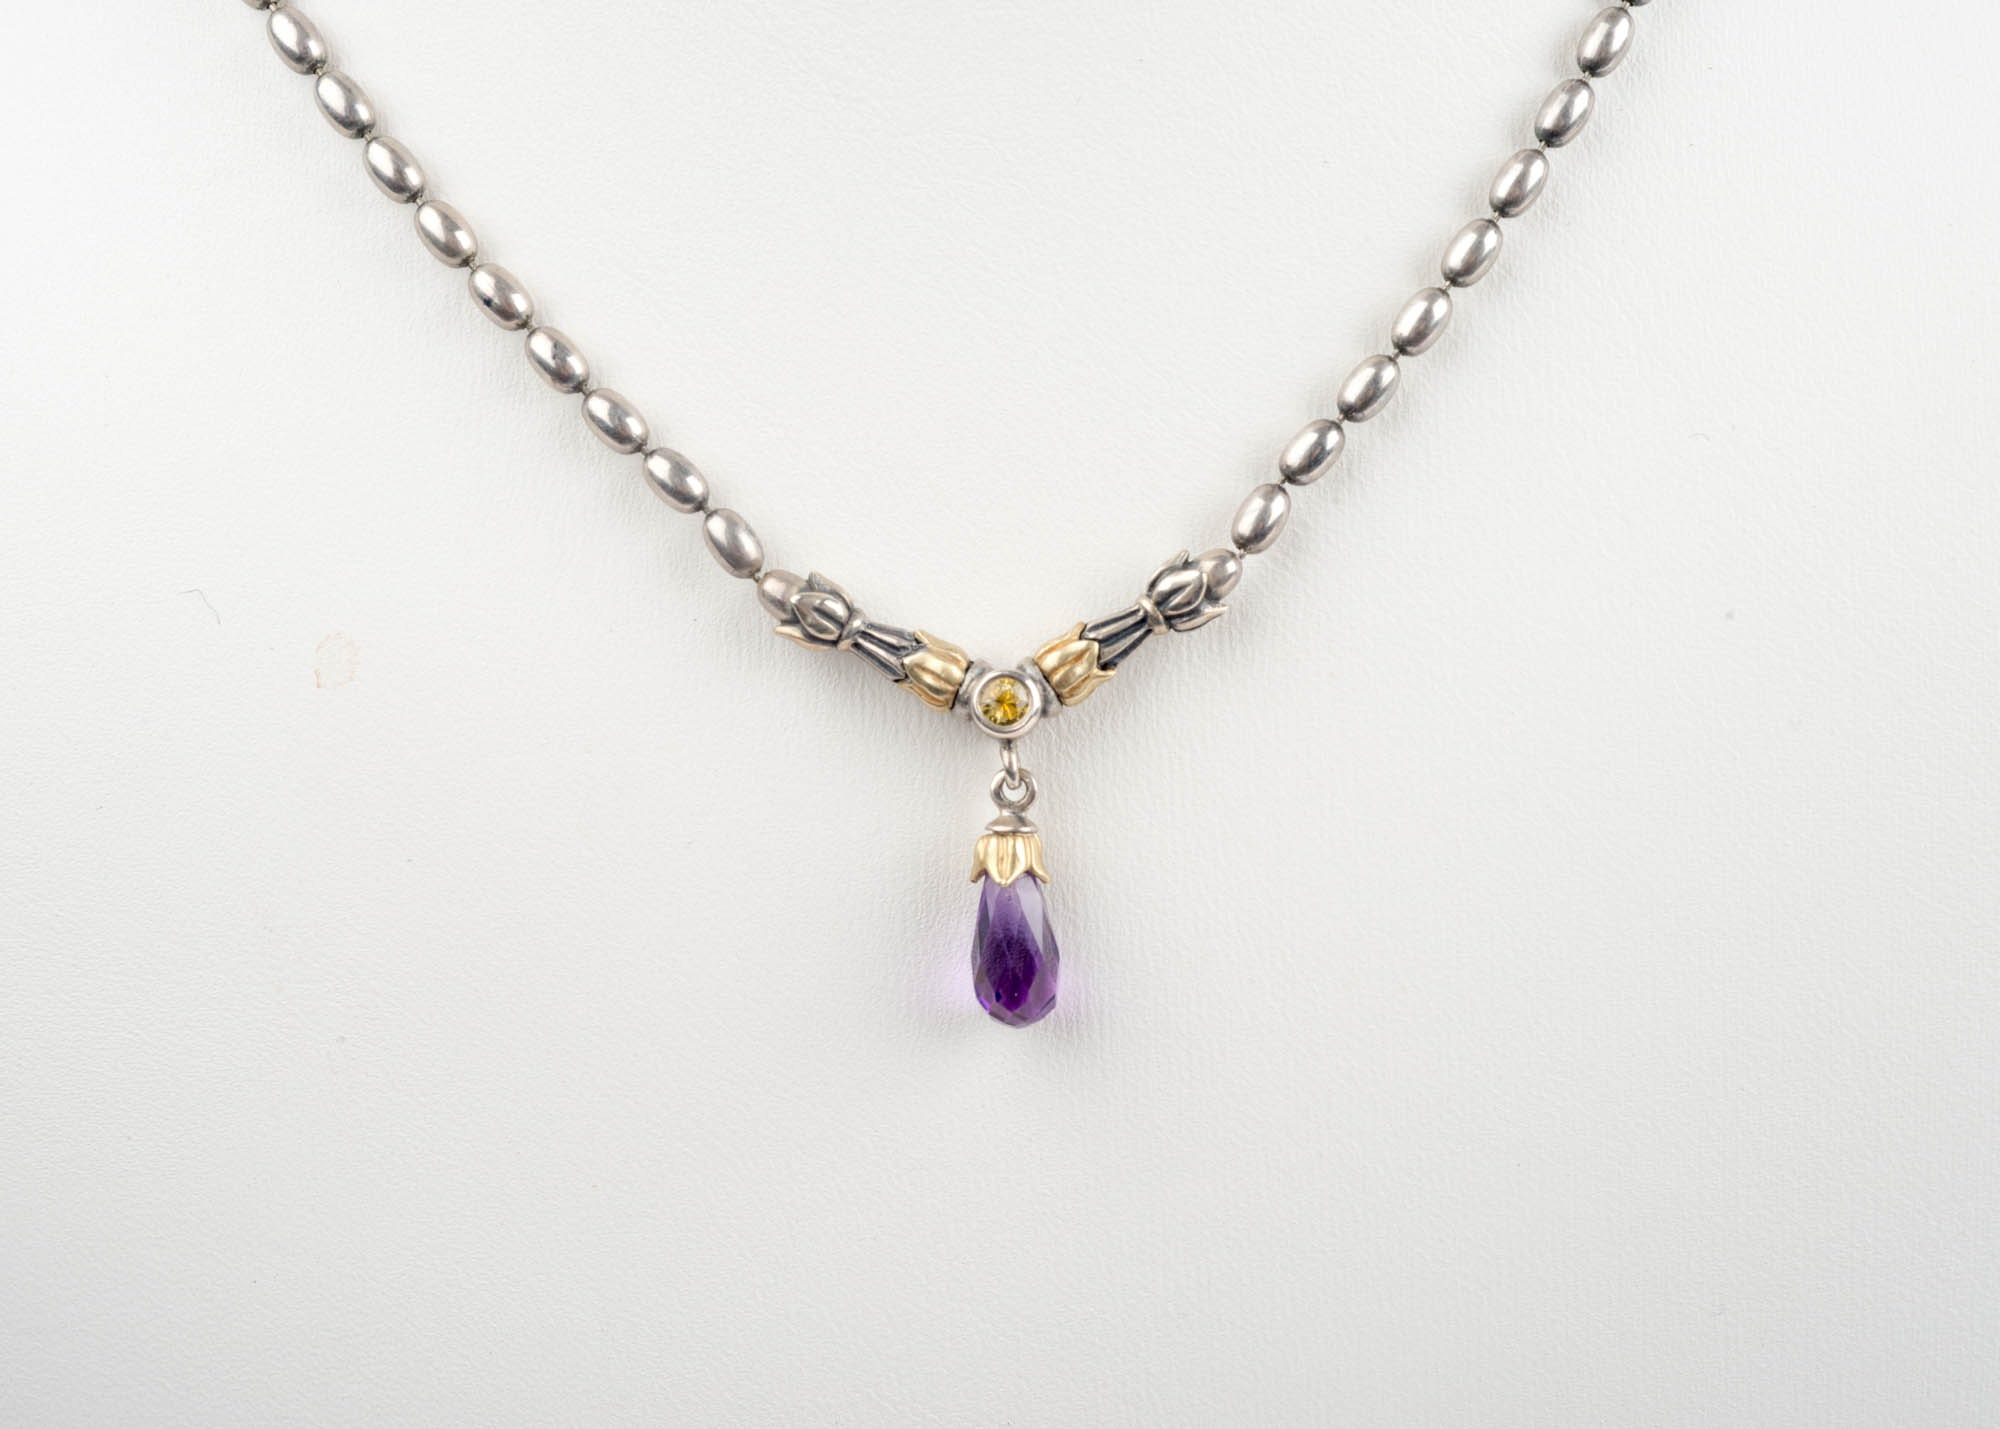 18K Yellow Gold, Sterling Silver, Amethyst and Yellow Sapphire Necklace